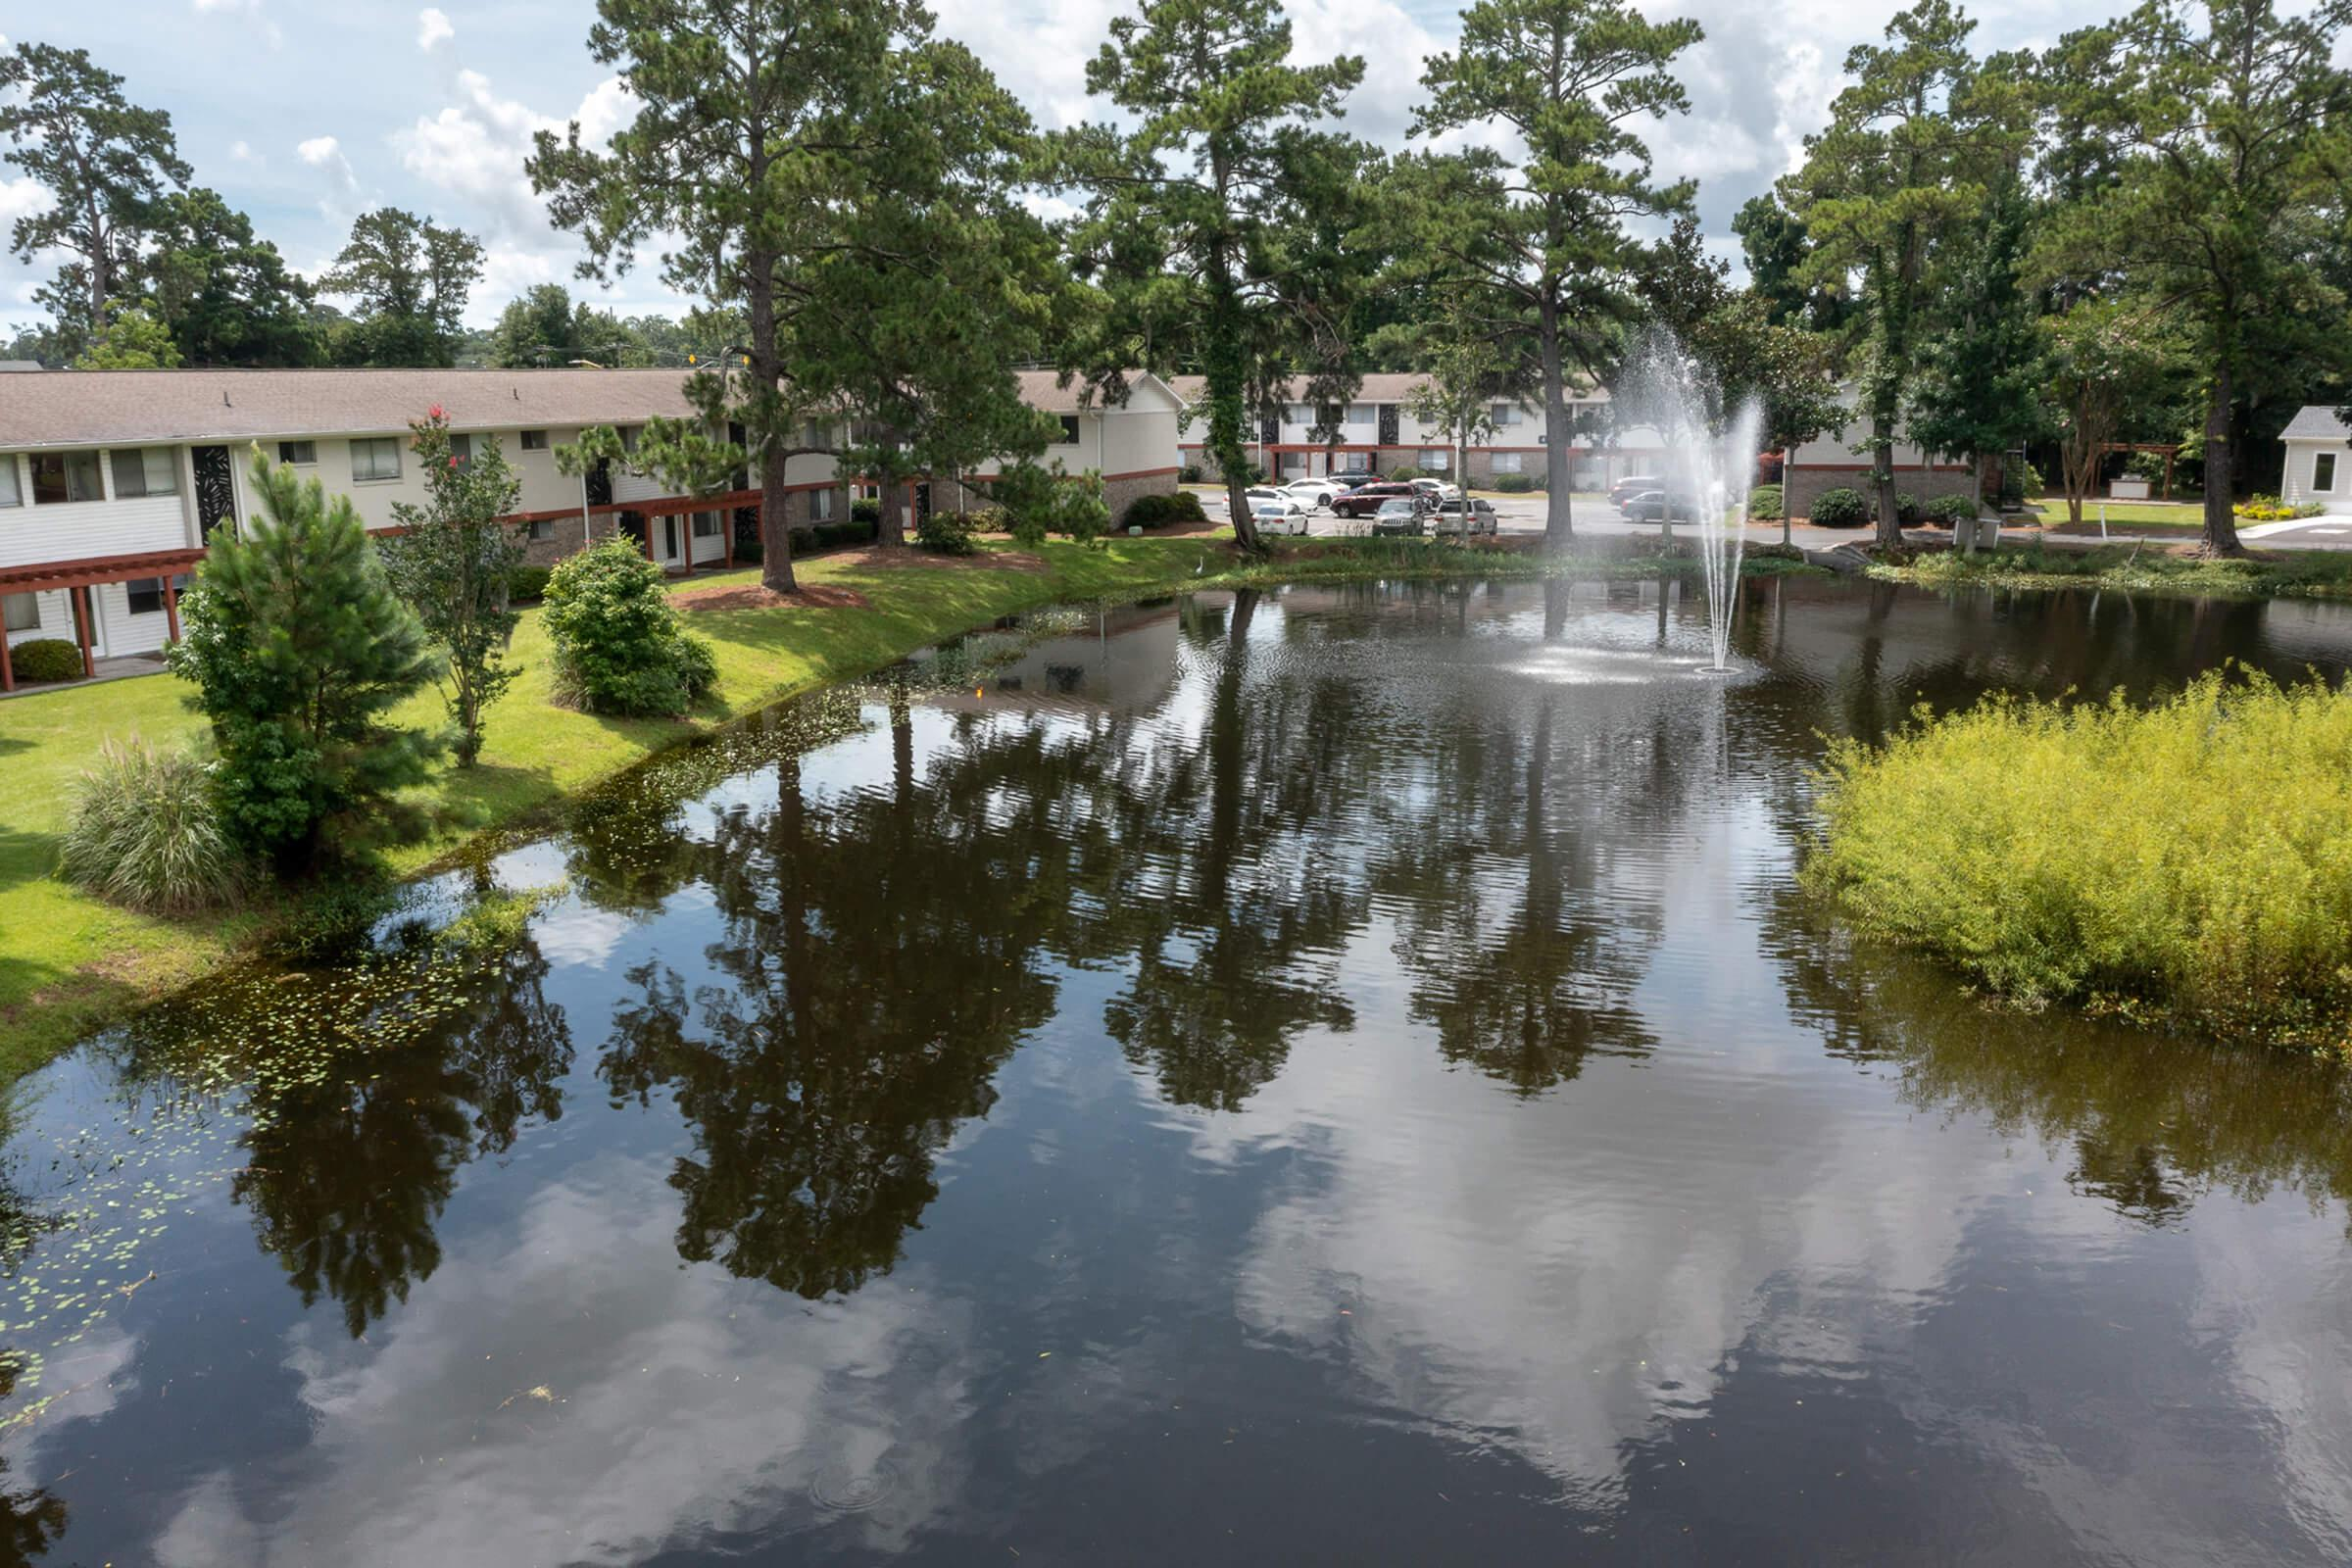 THERE'S NO PLACE LIKE HOME AT ASCEND AT SAVANNAH